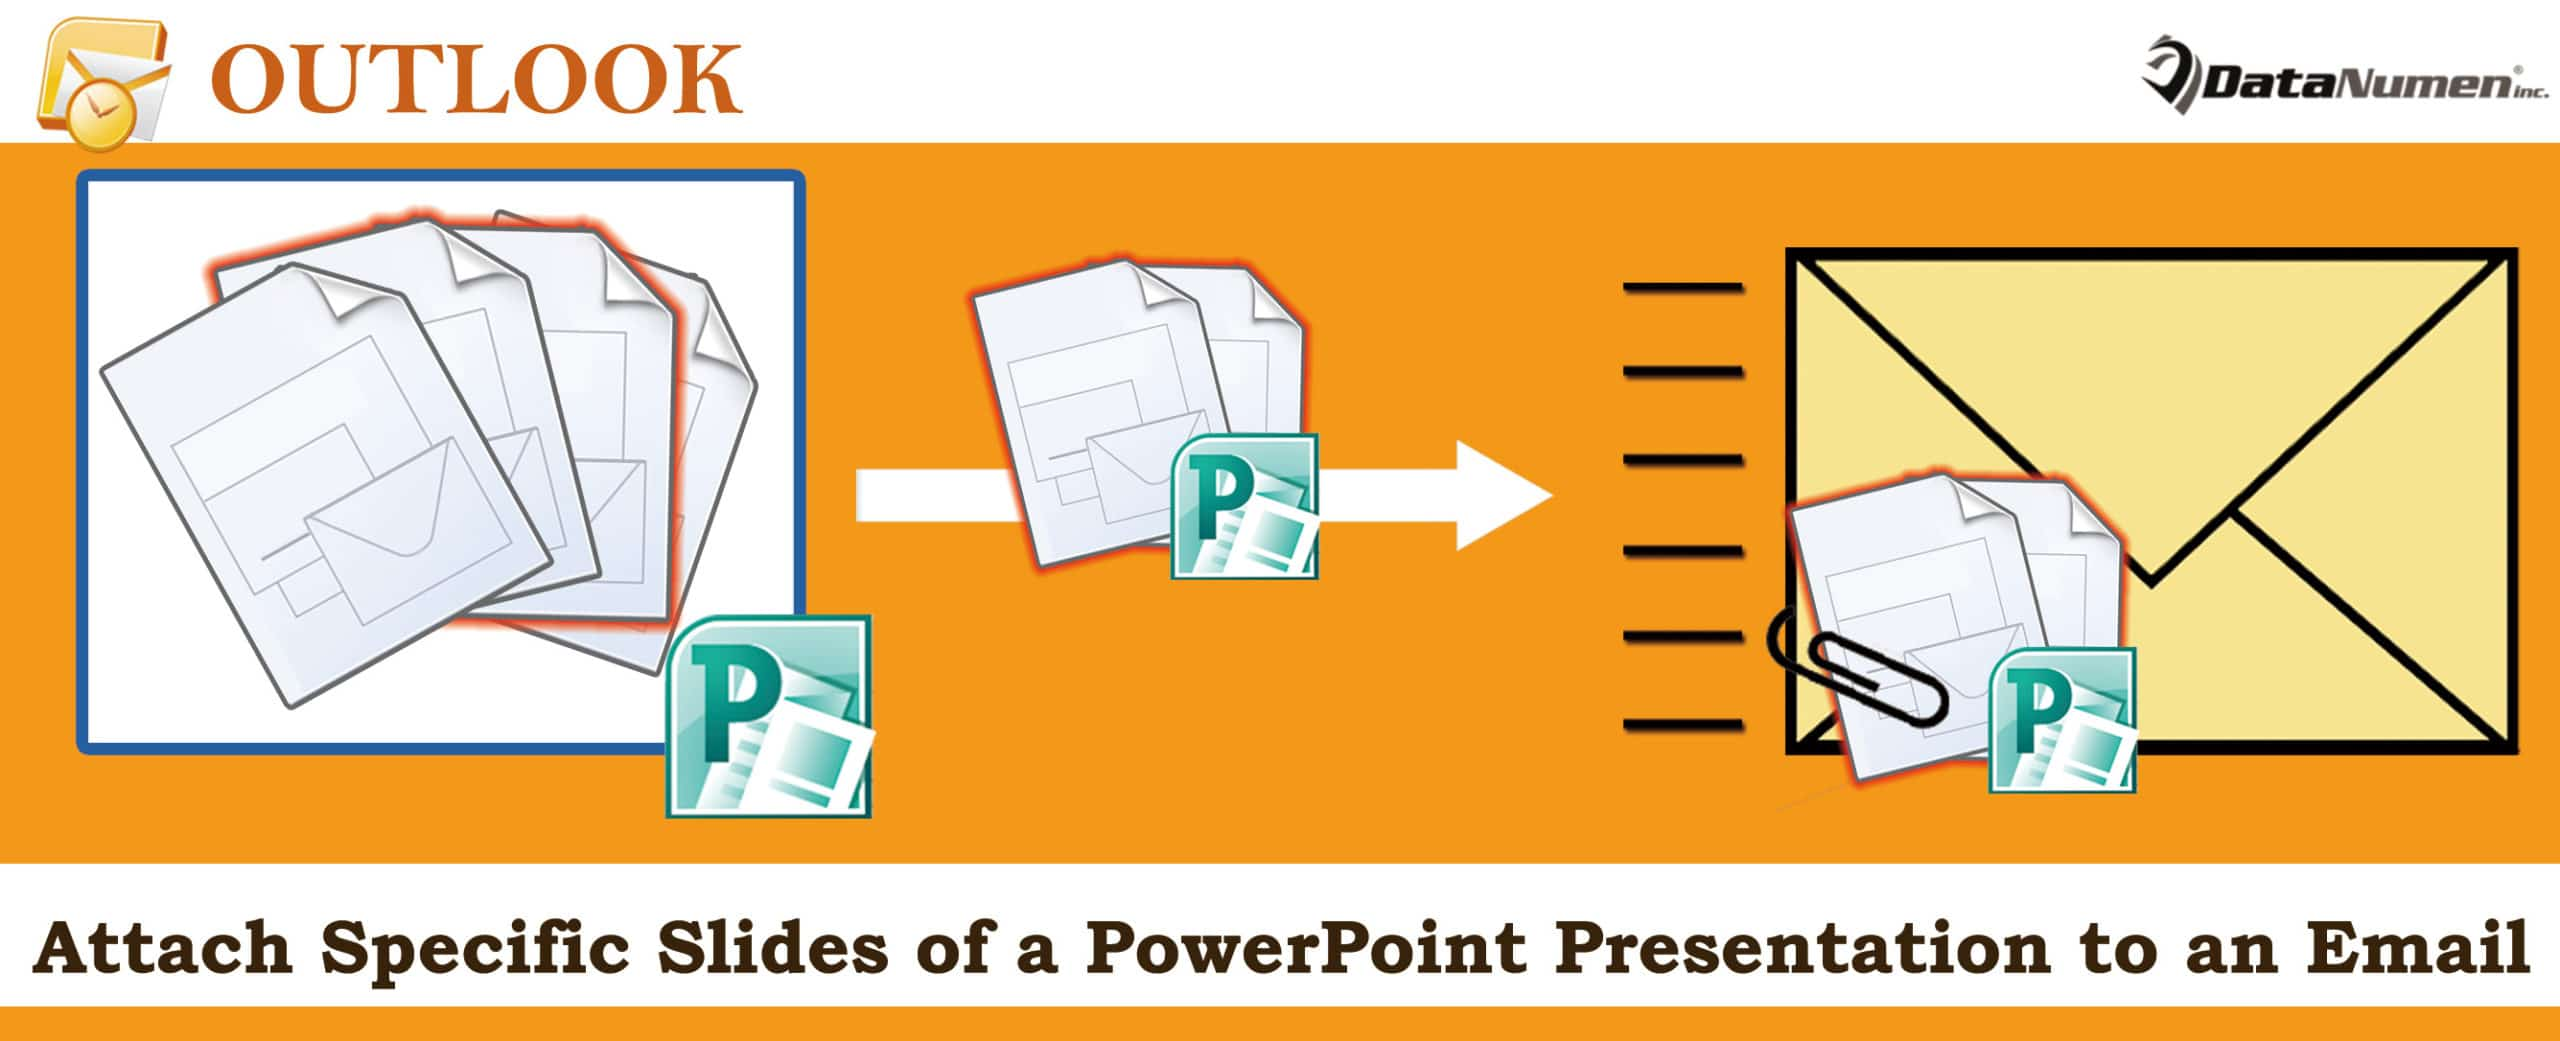 Quickly Attach the Specific Slides of a PowerPoint Presentation to Your Outlook Email